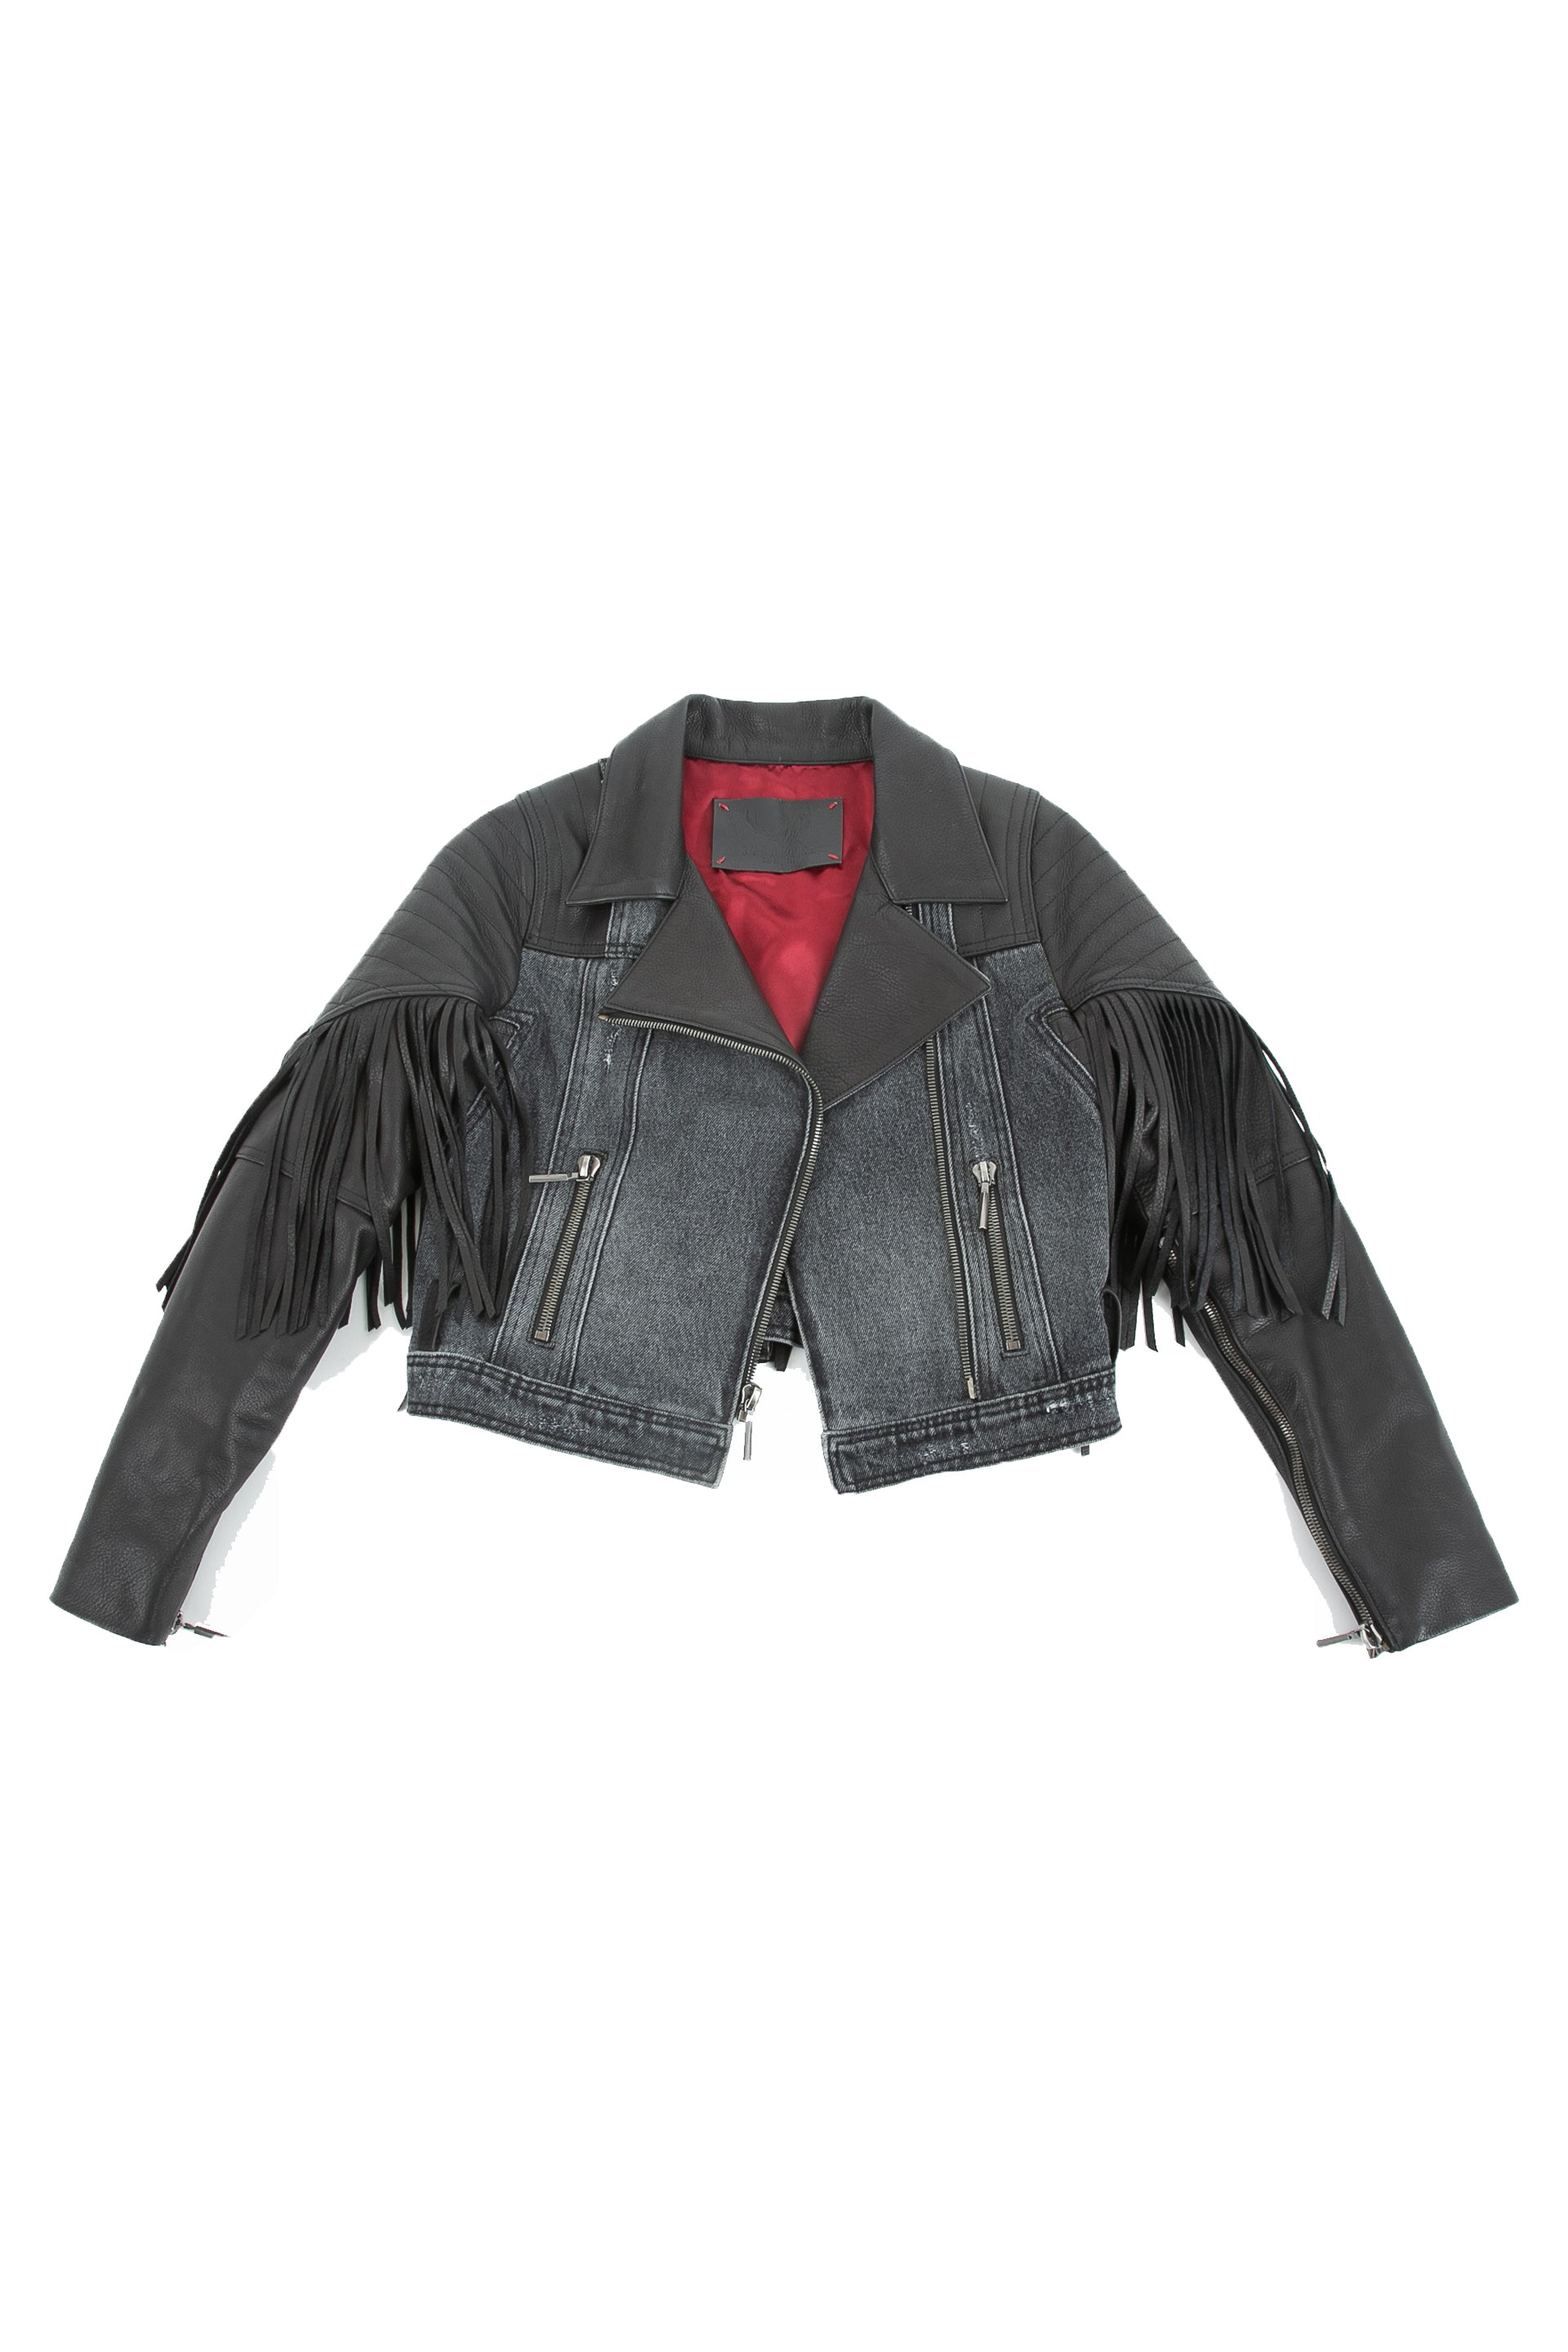 Front of La Matadora leather jacket